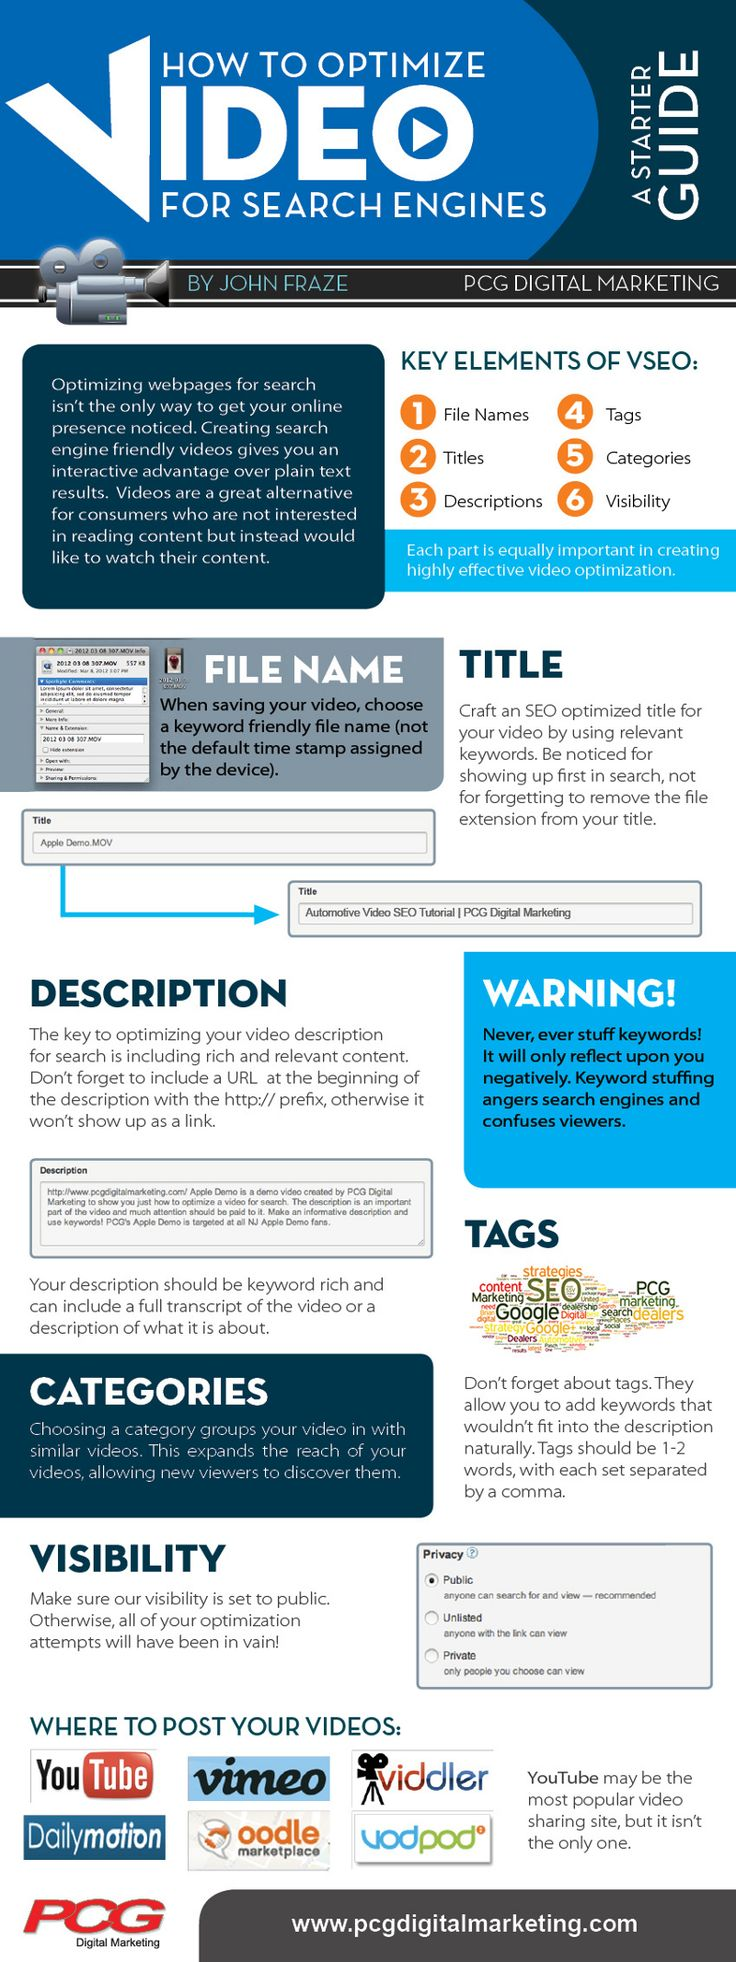 Video Search Engine Optimization Guide #technology #SEO